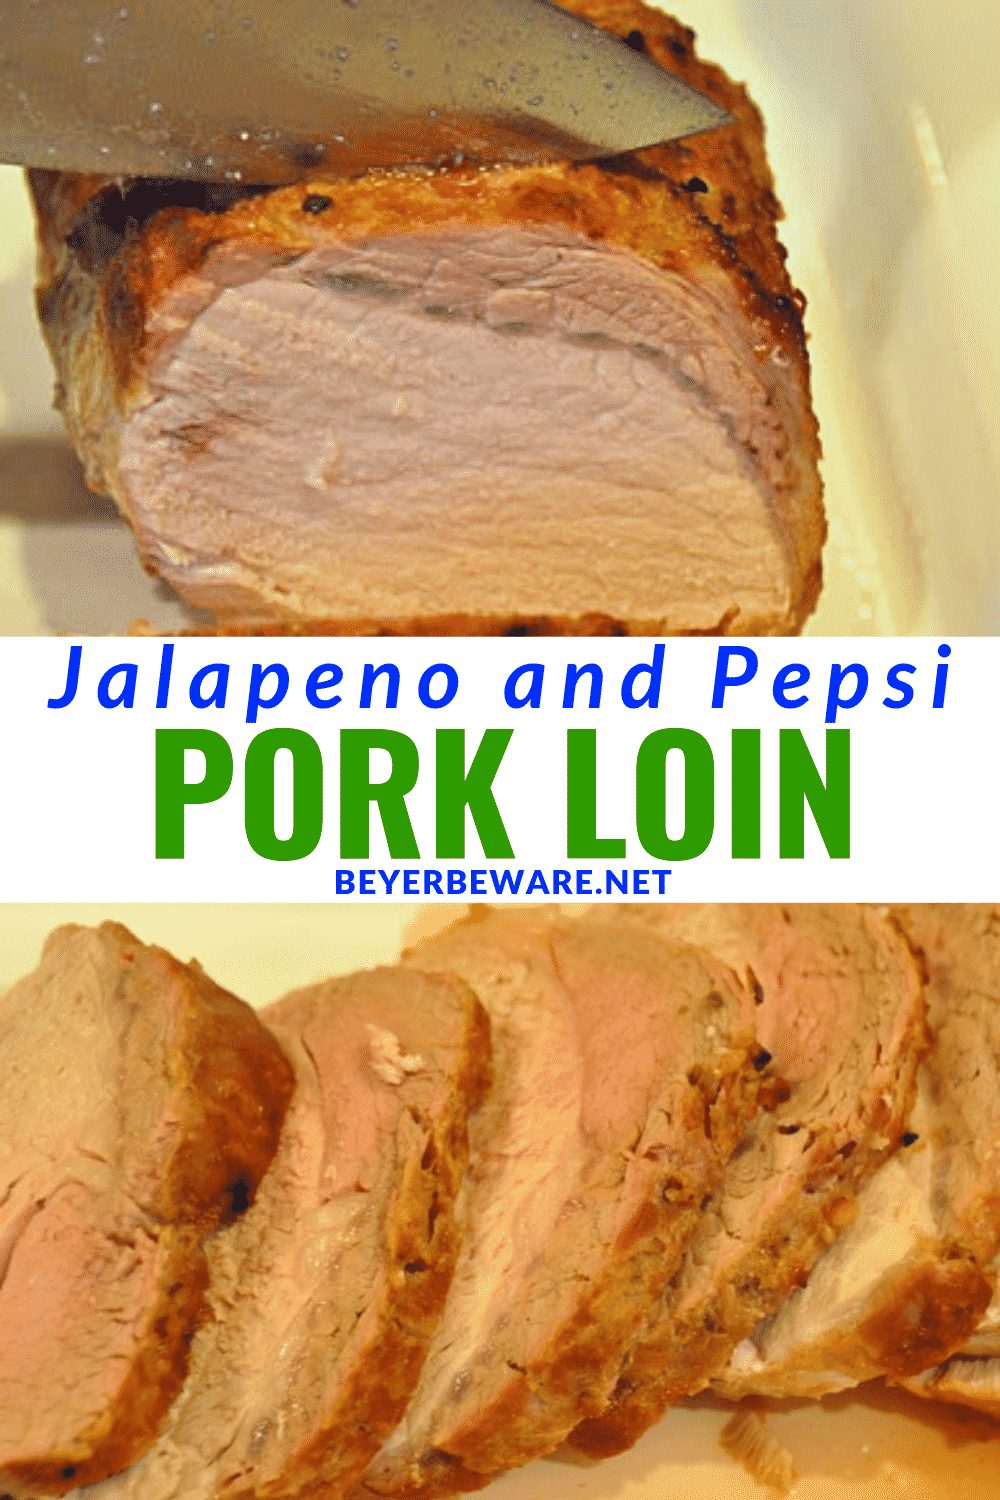 Jalapeno and Pepsi Pork Loin has the sweetness of Pepsi and heat of jalapeno to make a juicy and flavorful marinade for a grilled or oven baked pork loin. #PorkLoin #Spicy #EasyRecipes #Pork